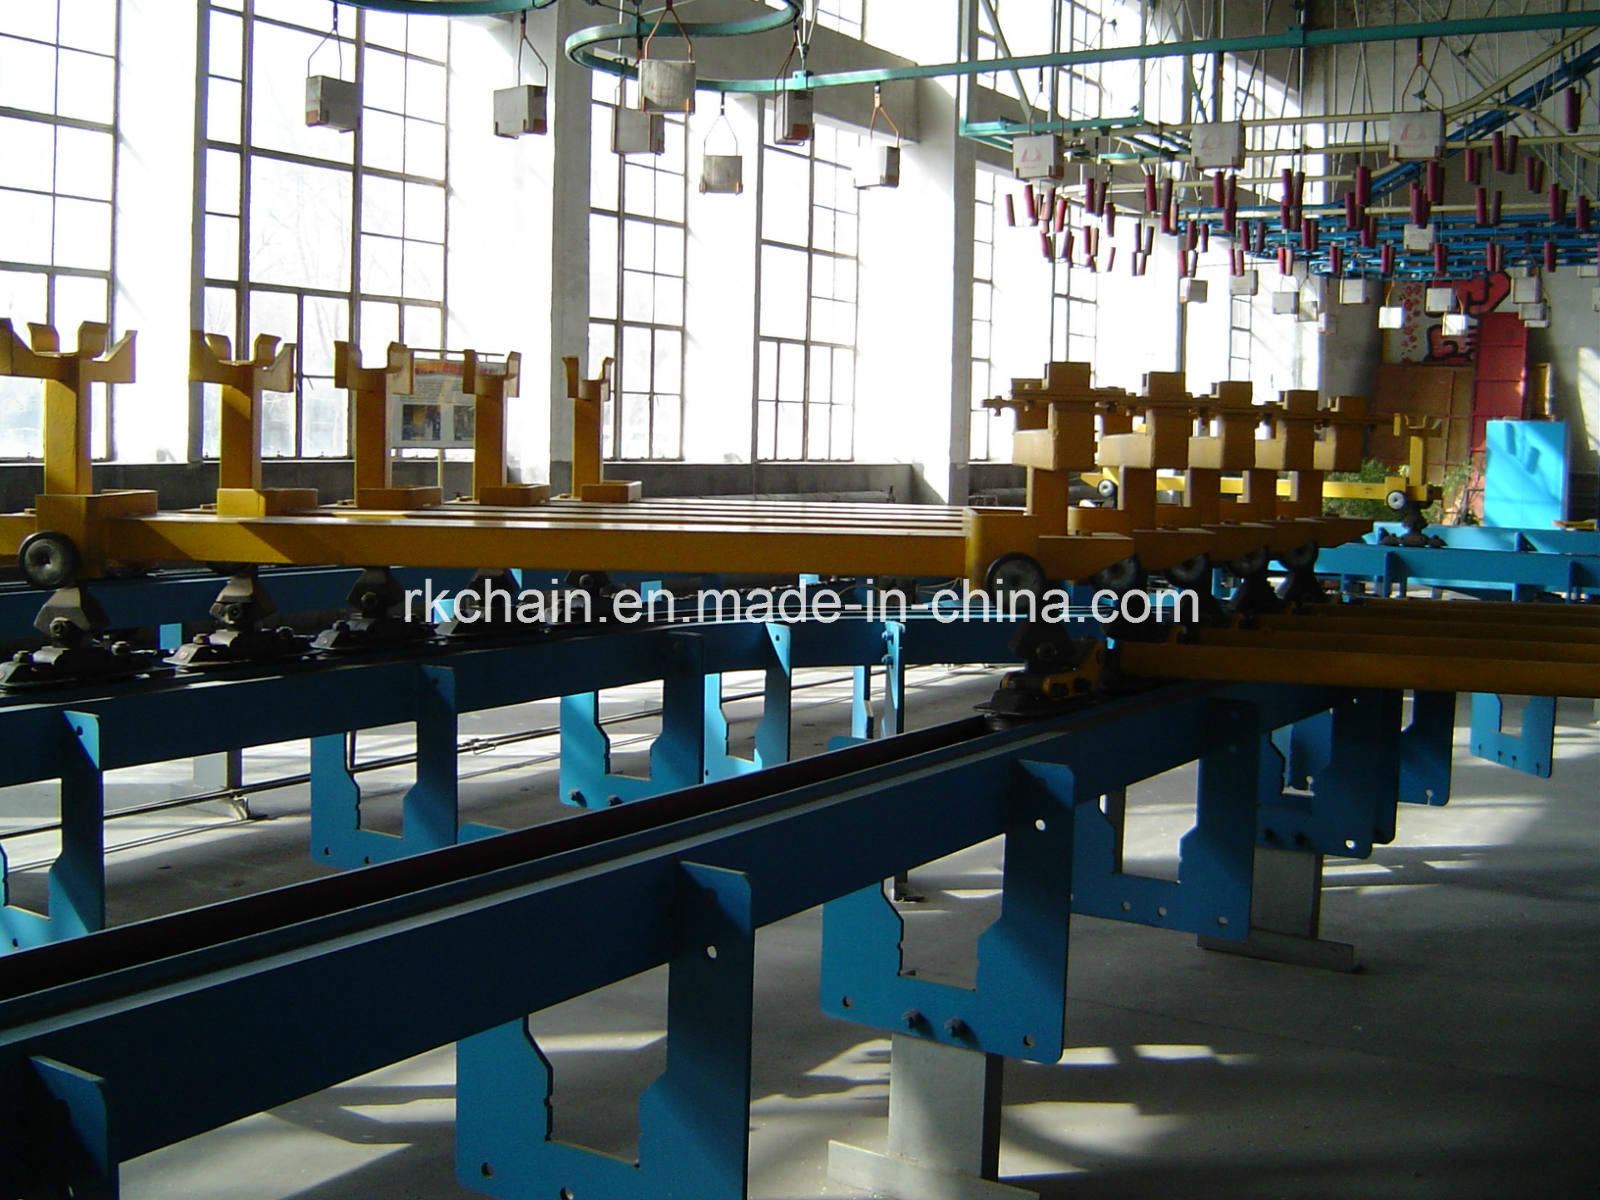 "(3""4""6"") Chain Conveyor for Overhead Conveyor System"